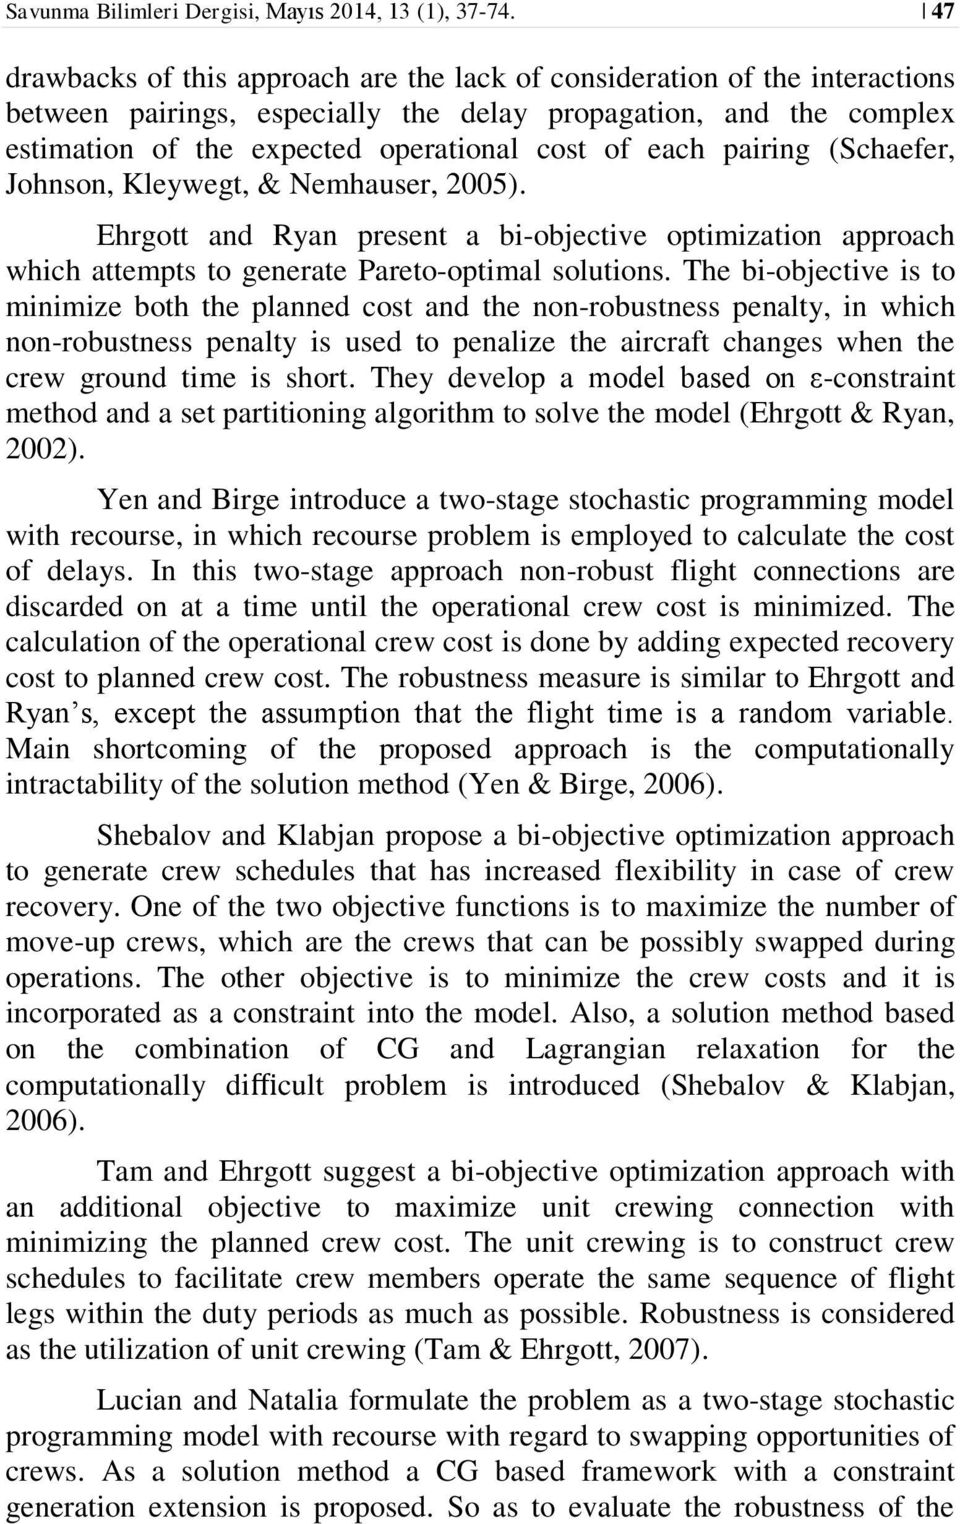 pairing (Schaefer, Johnson, Kleywegt, & Nemhauser, 2005). Ehrgott and Ryan present a bi-objective optimization approach which attempts to generate Pareto-optimal solutions.